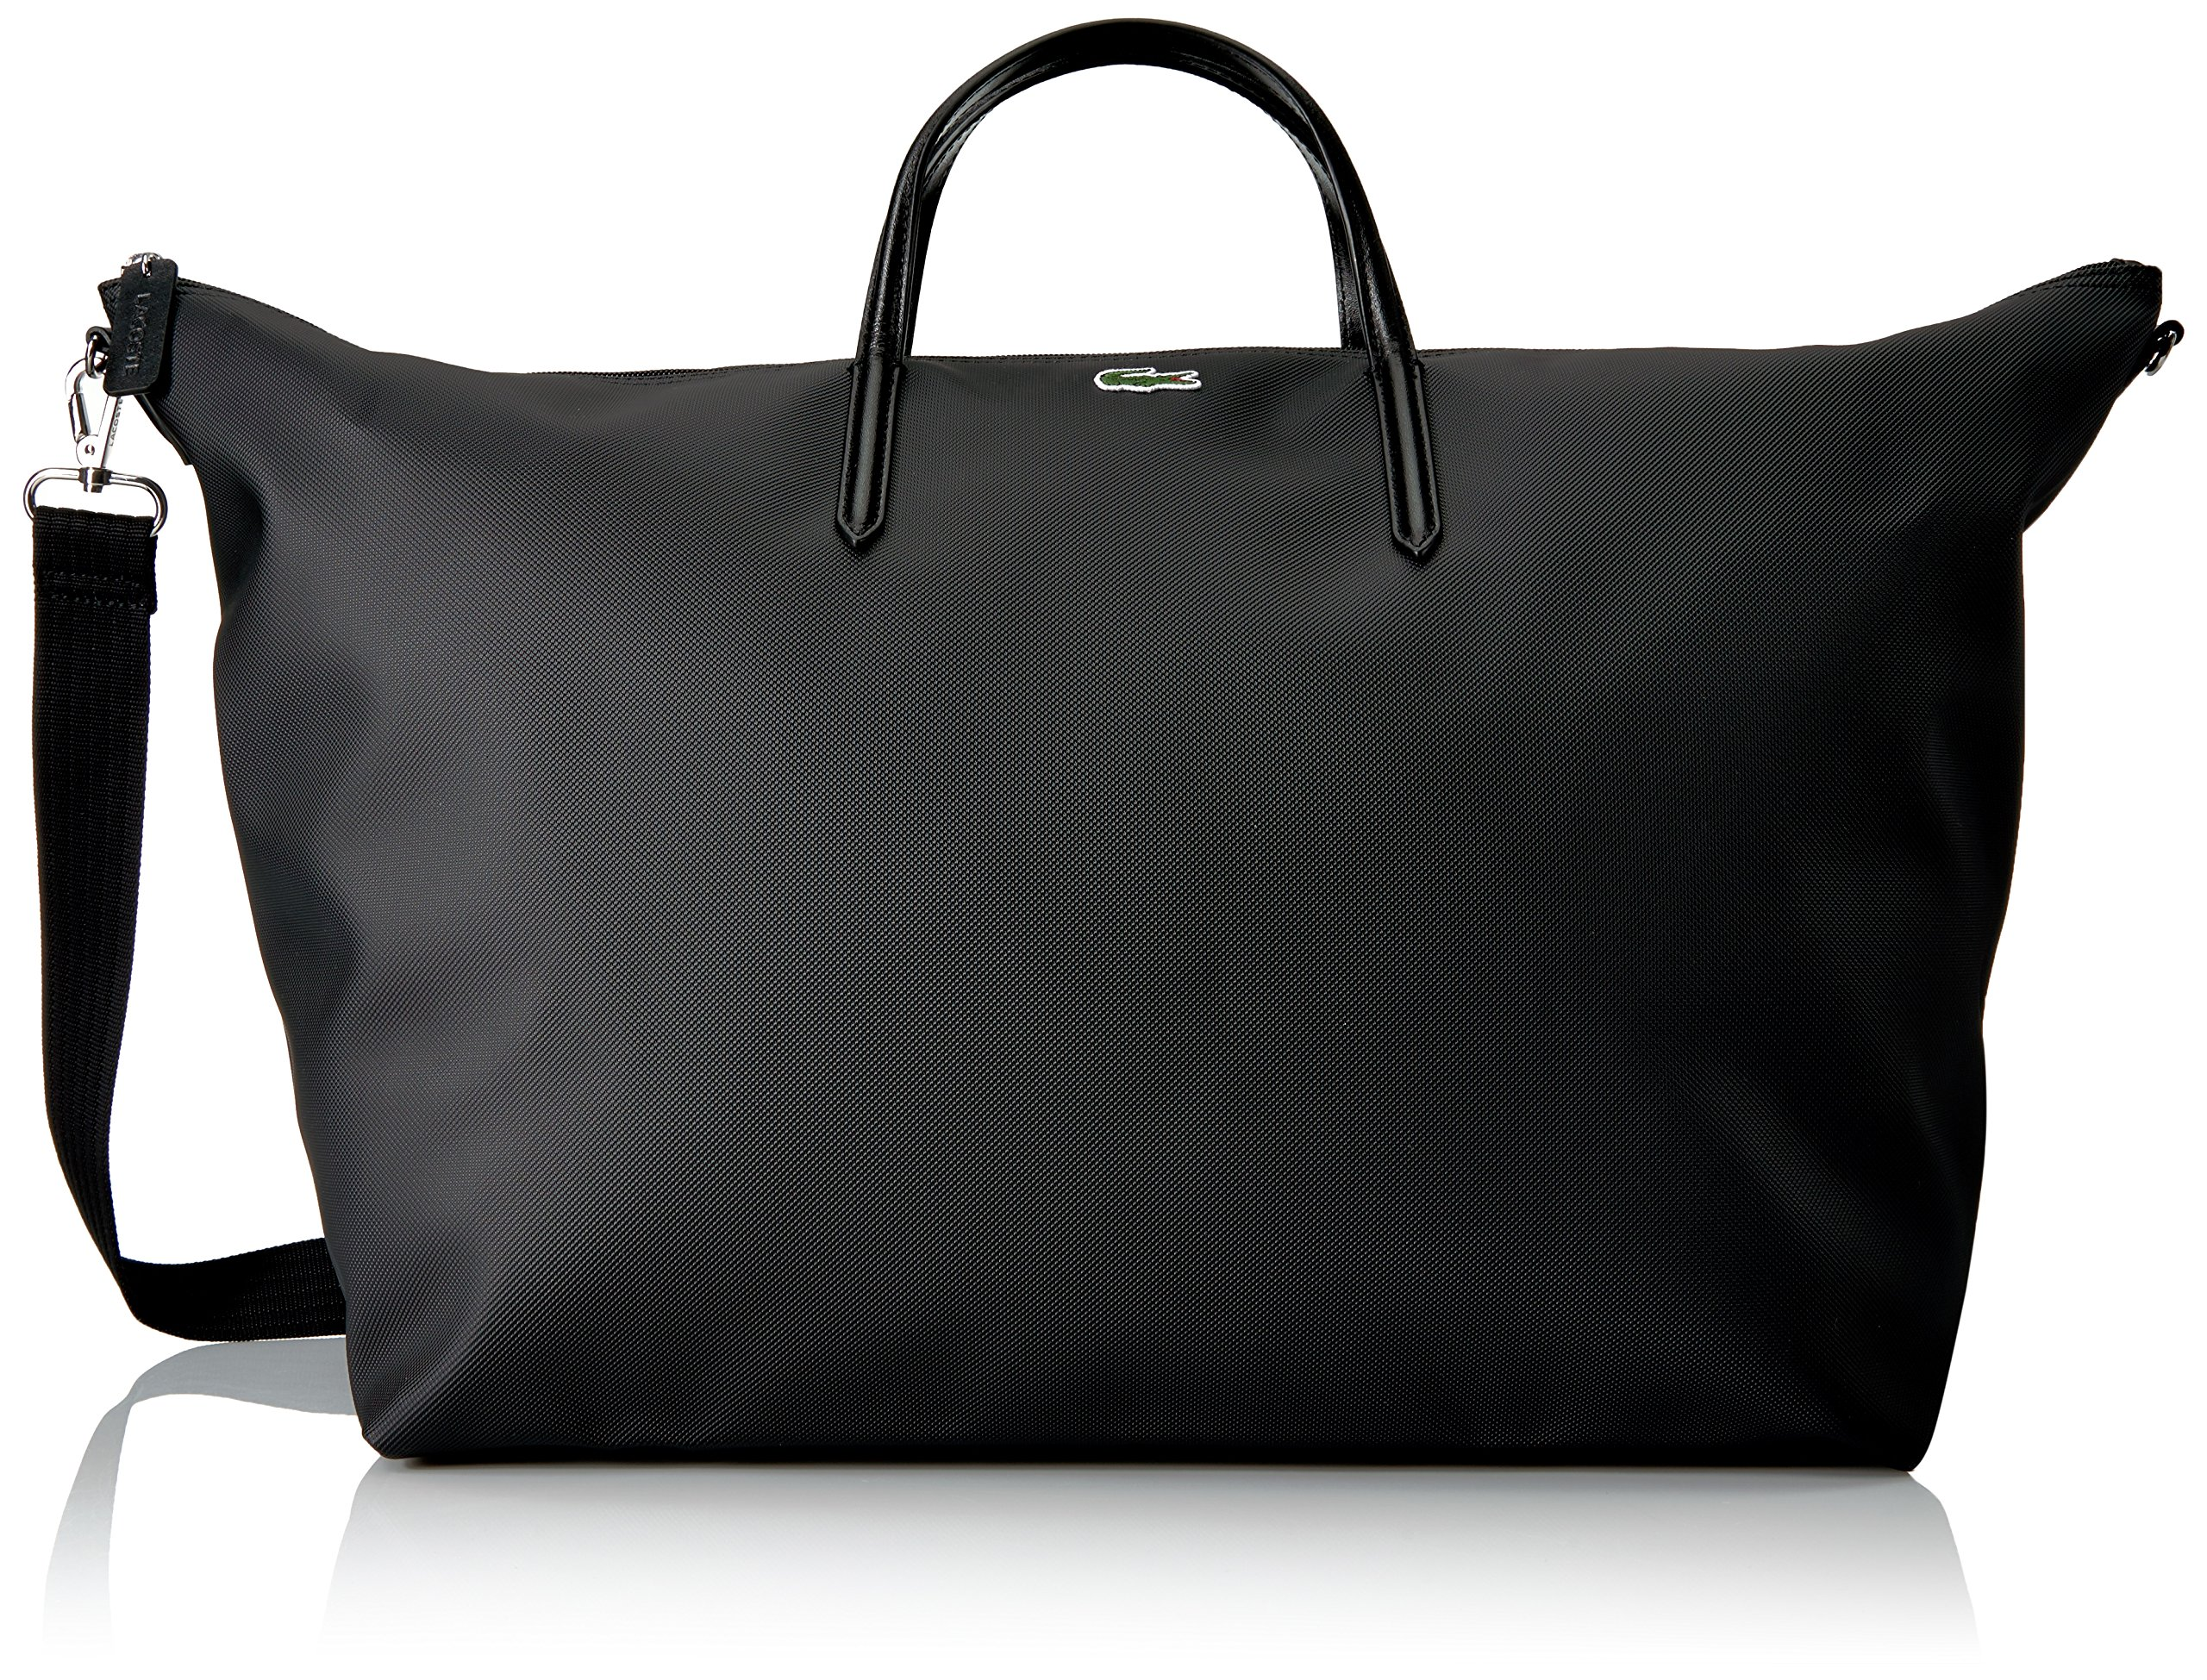 Lacoste L.12.12 Concept Travel Shopping Bag, 000 Black by Lacoste